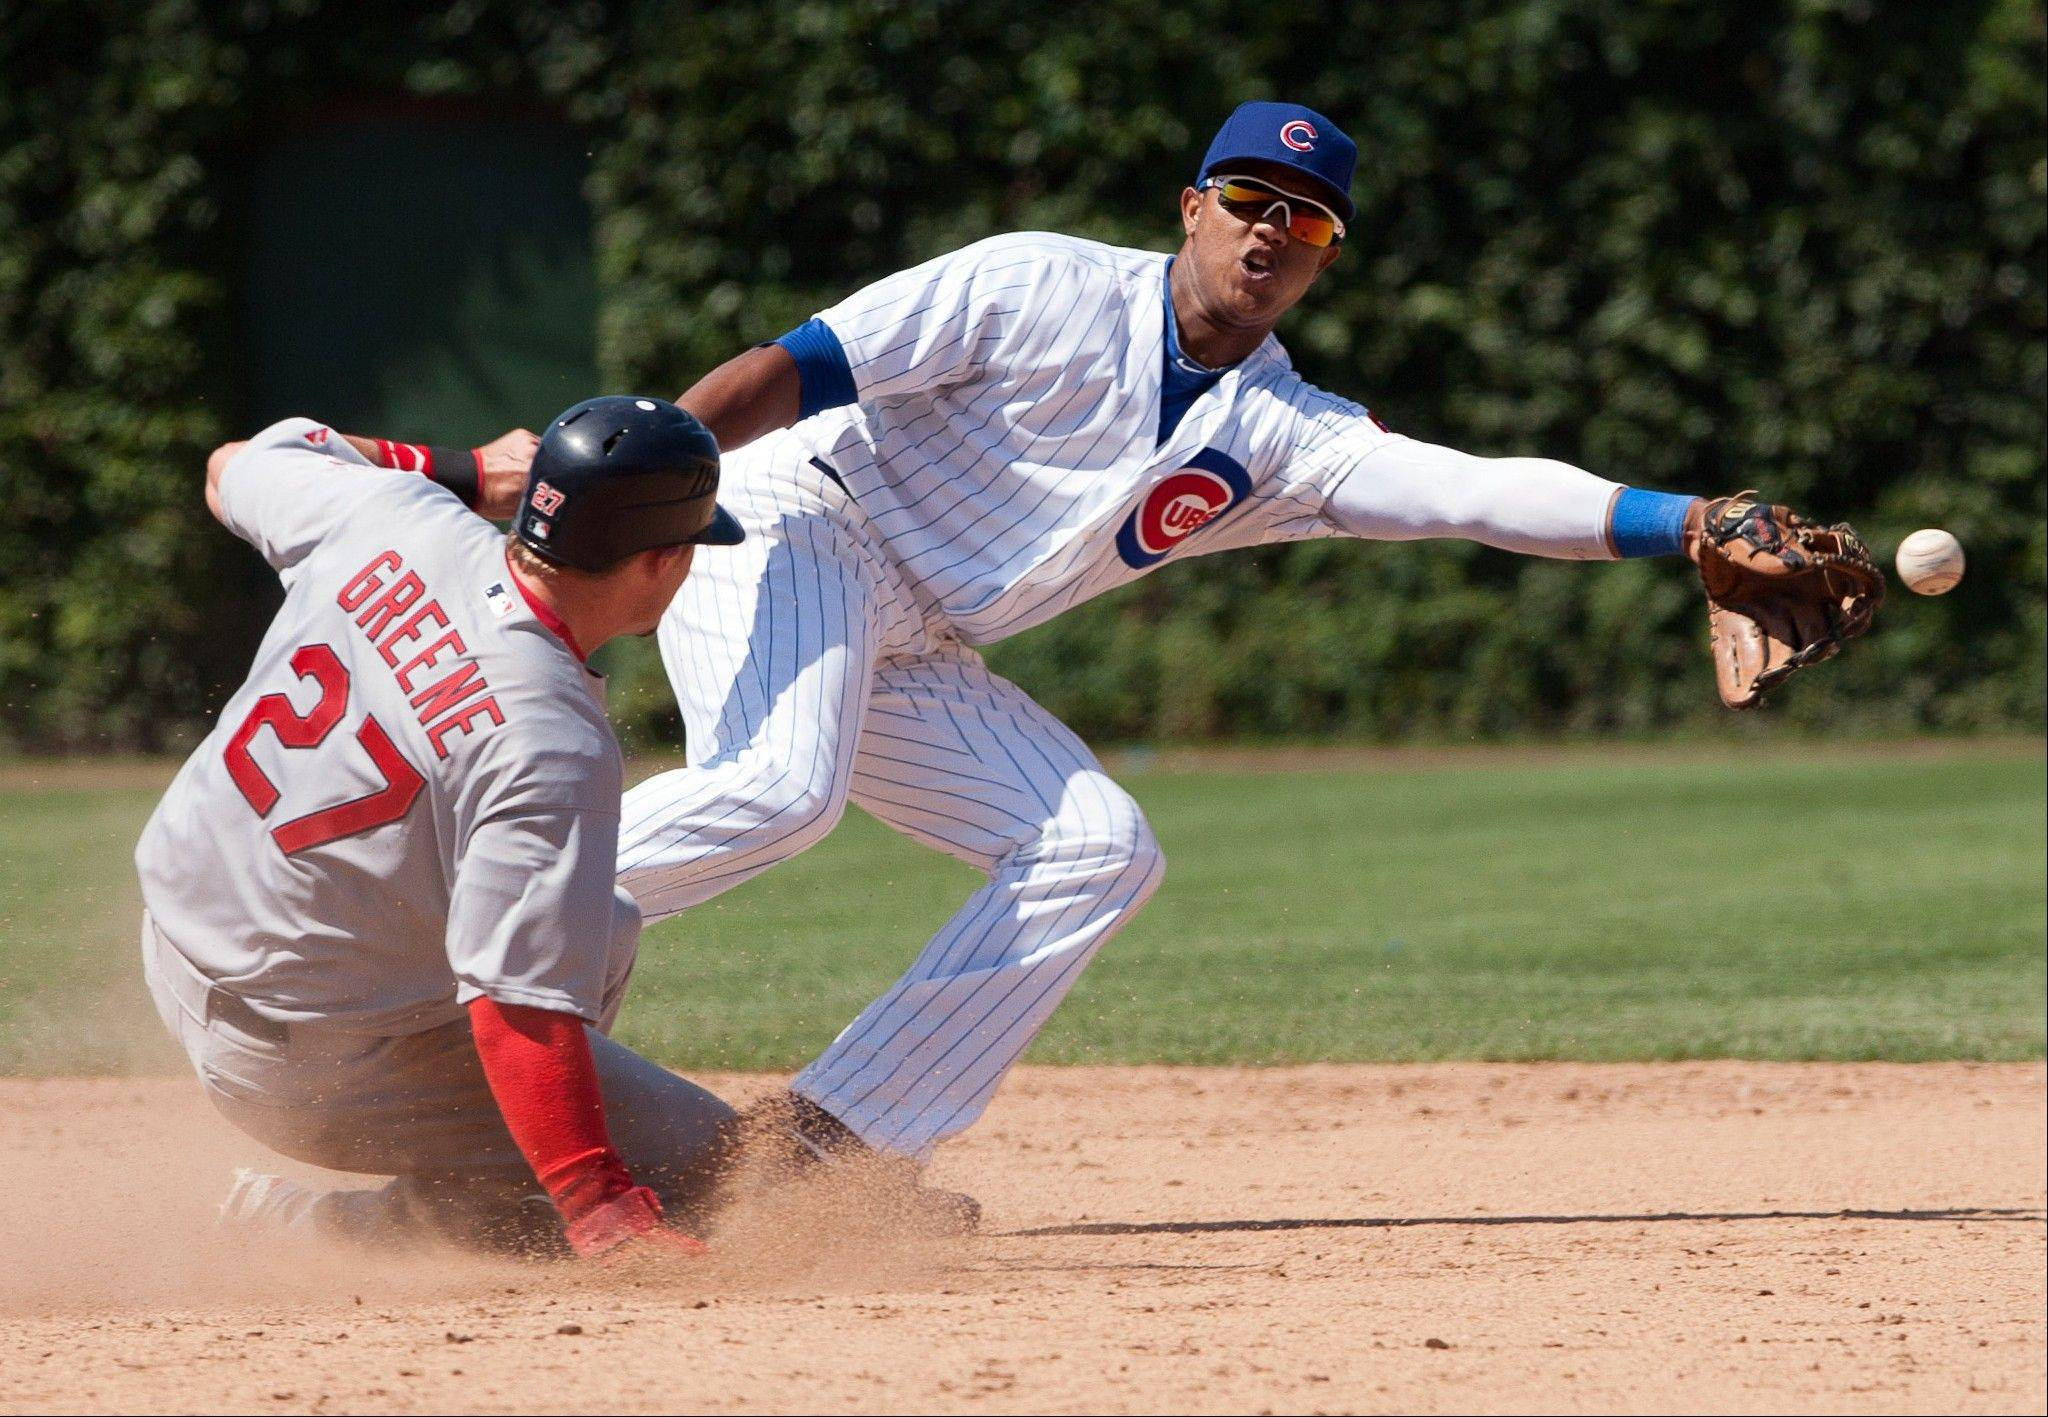 Sveum says Cubs' 2B deserves serious Gold Glove consideration